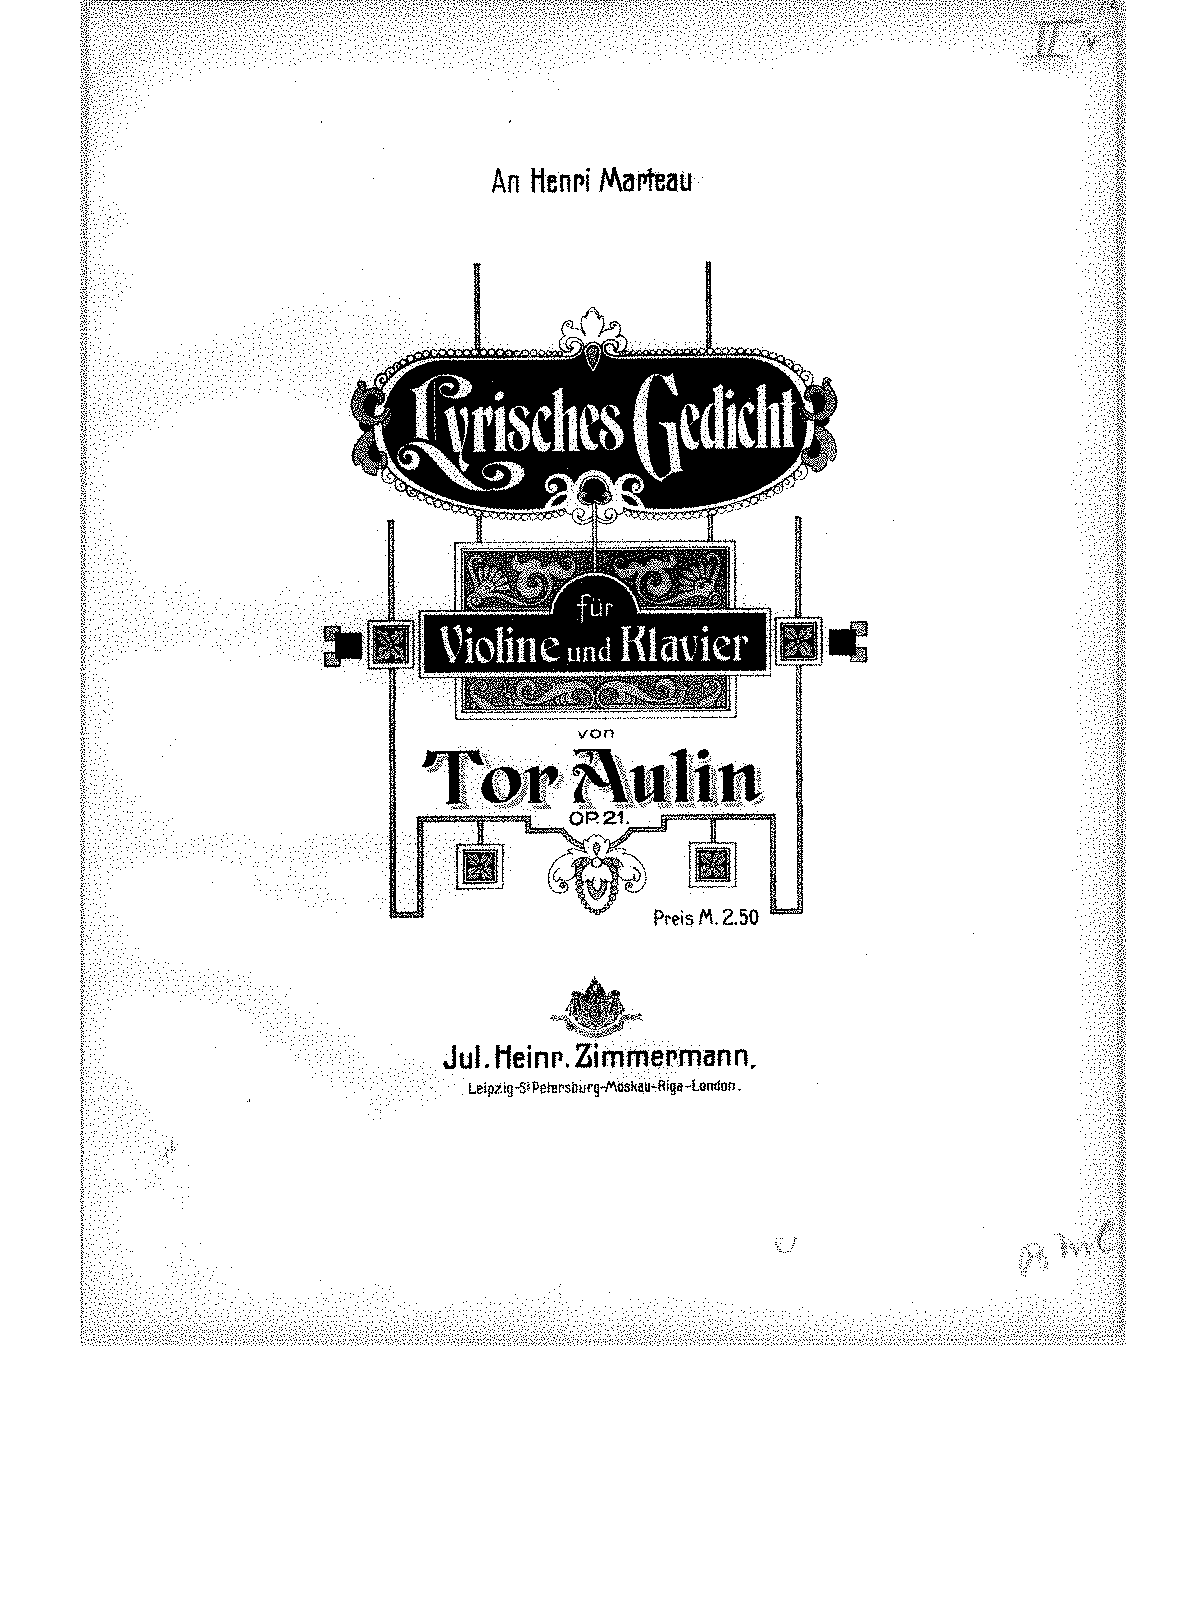 SIBLEY1802.7558.68f5-39087012933984lyrisches score color cover.pdf